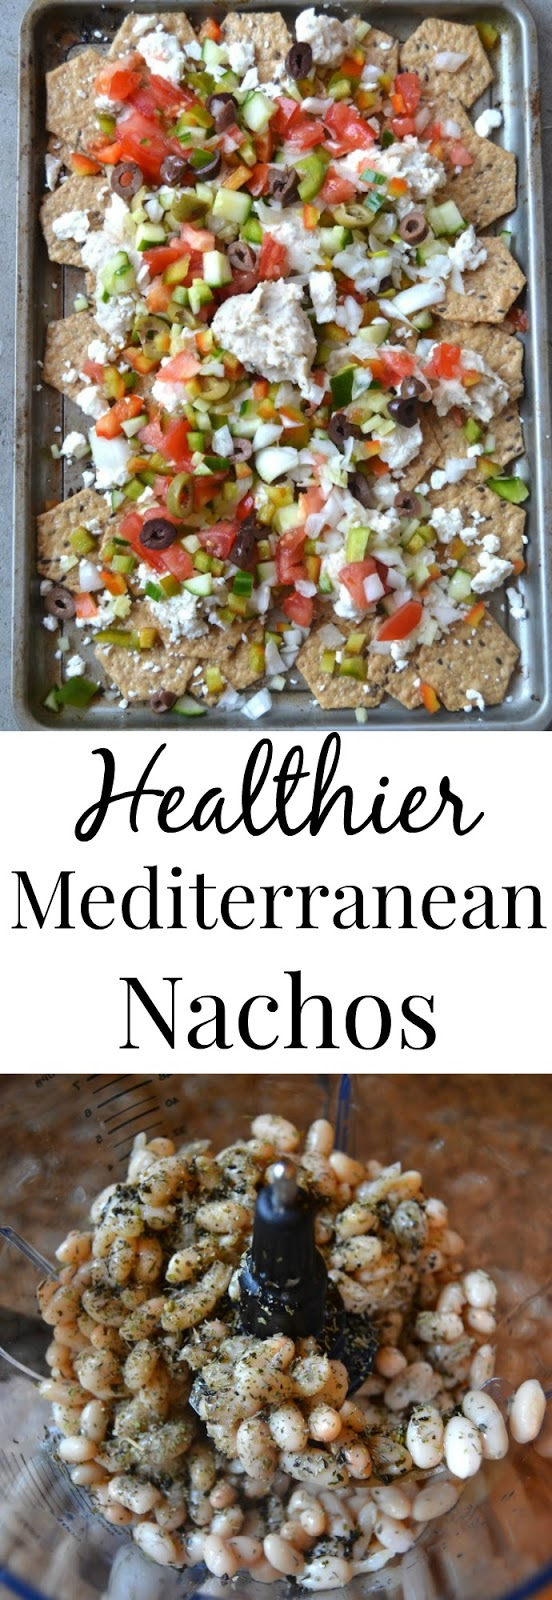 Healthier Mediterranean Nachos- loaded with homemade hummus, kalamata olives, tomatoes, cucumber and more! www.nutritionistreviews.com